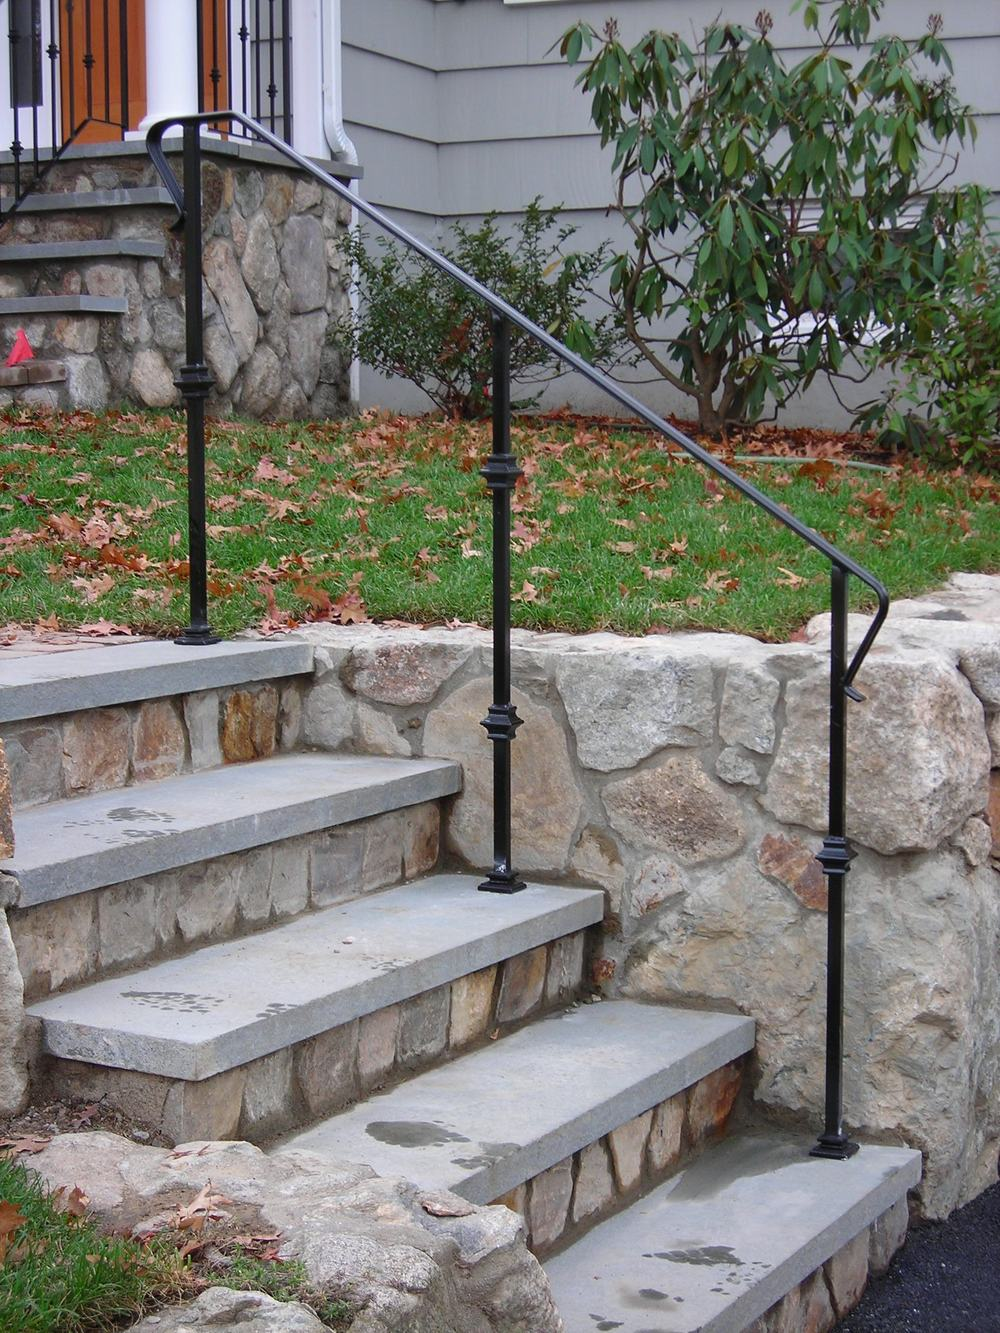 Picket-Less Railings with Baluster Collars & Cover Shoes